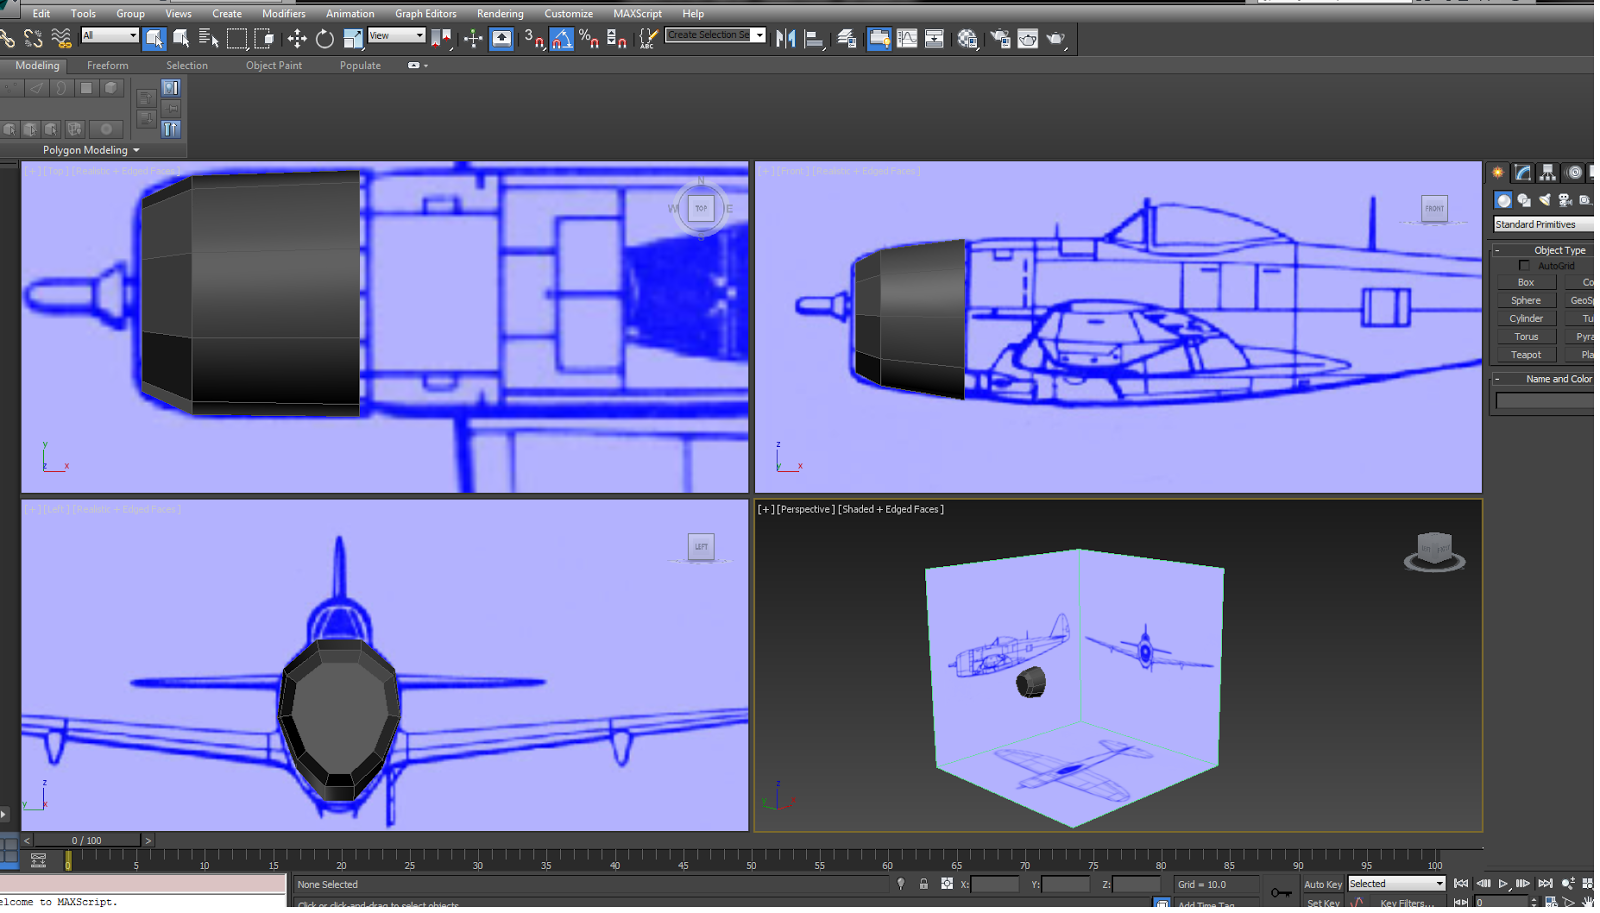 3d modelling and animation week 3 modelling an aircraft the presence of the blueprint images make modelling accurately and to scale much easier going forward when i start working on my star wars models i can see malvernweather Choice Image